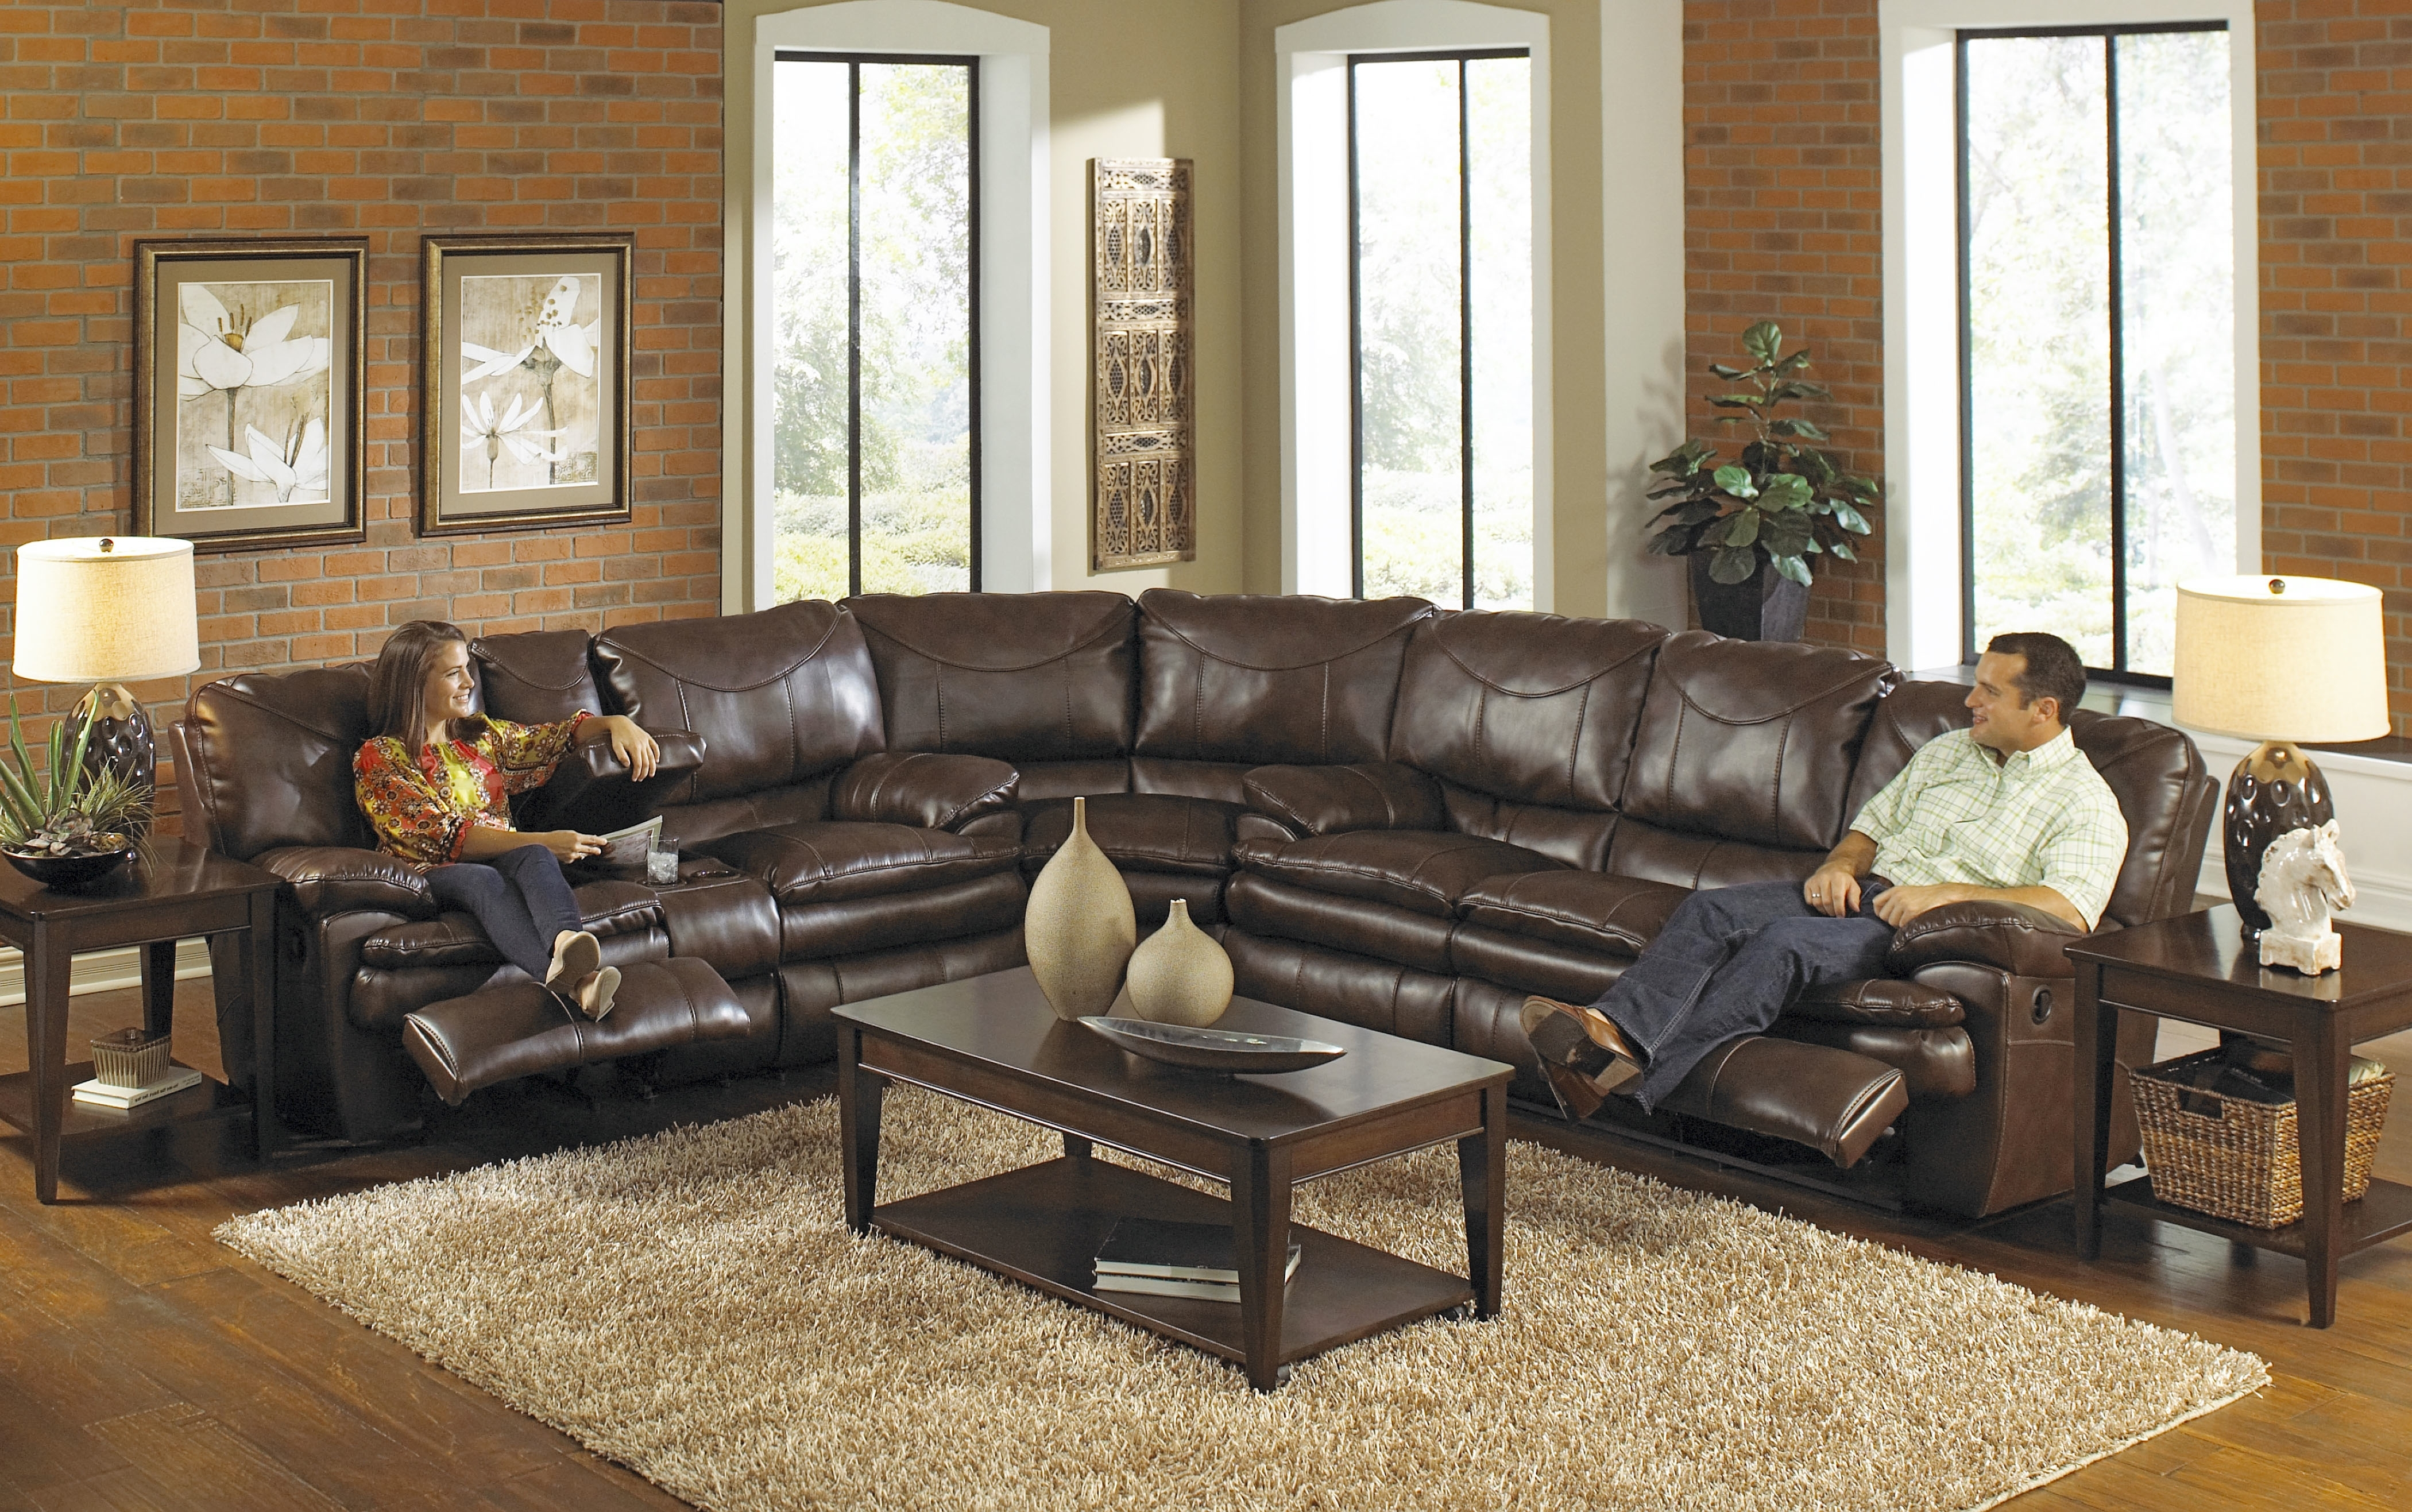 Delivered Sofa With Chaise And Recliner Buy Large Sectional Sofas With Popular Virginia Sectional Sofas (View 9 of 15)